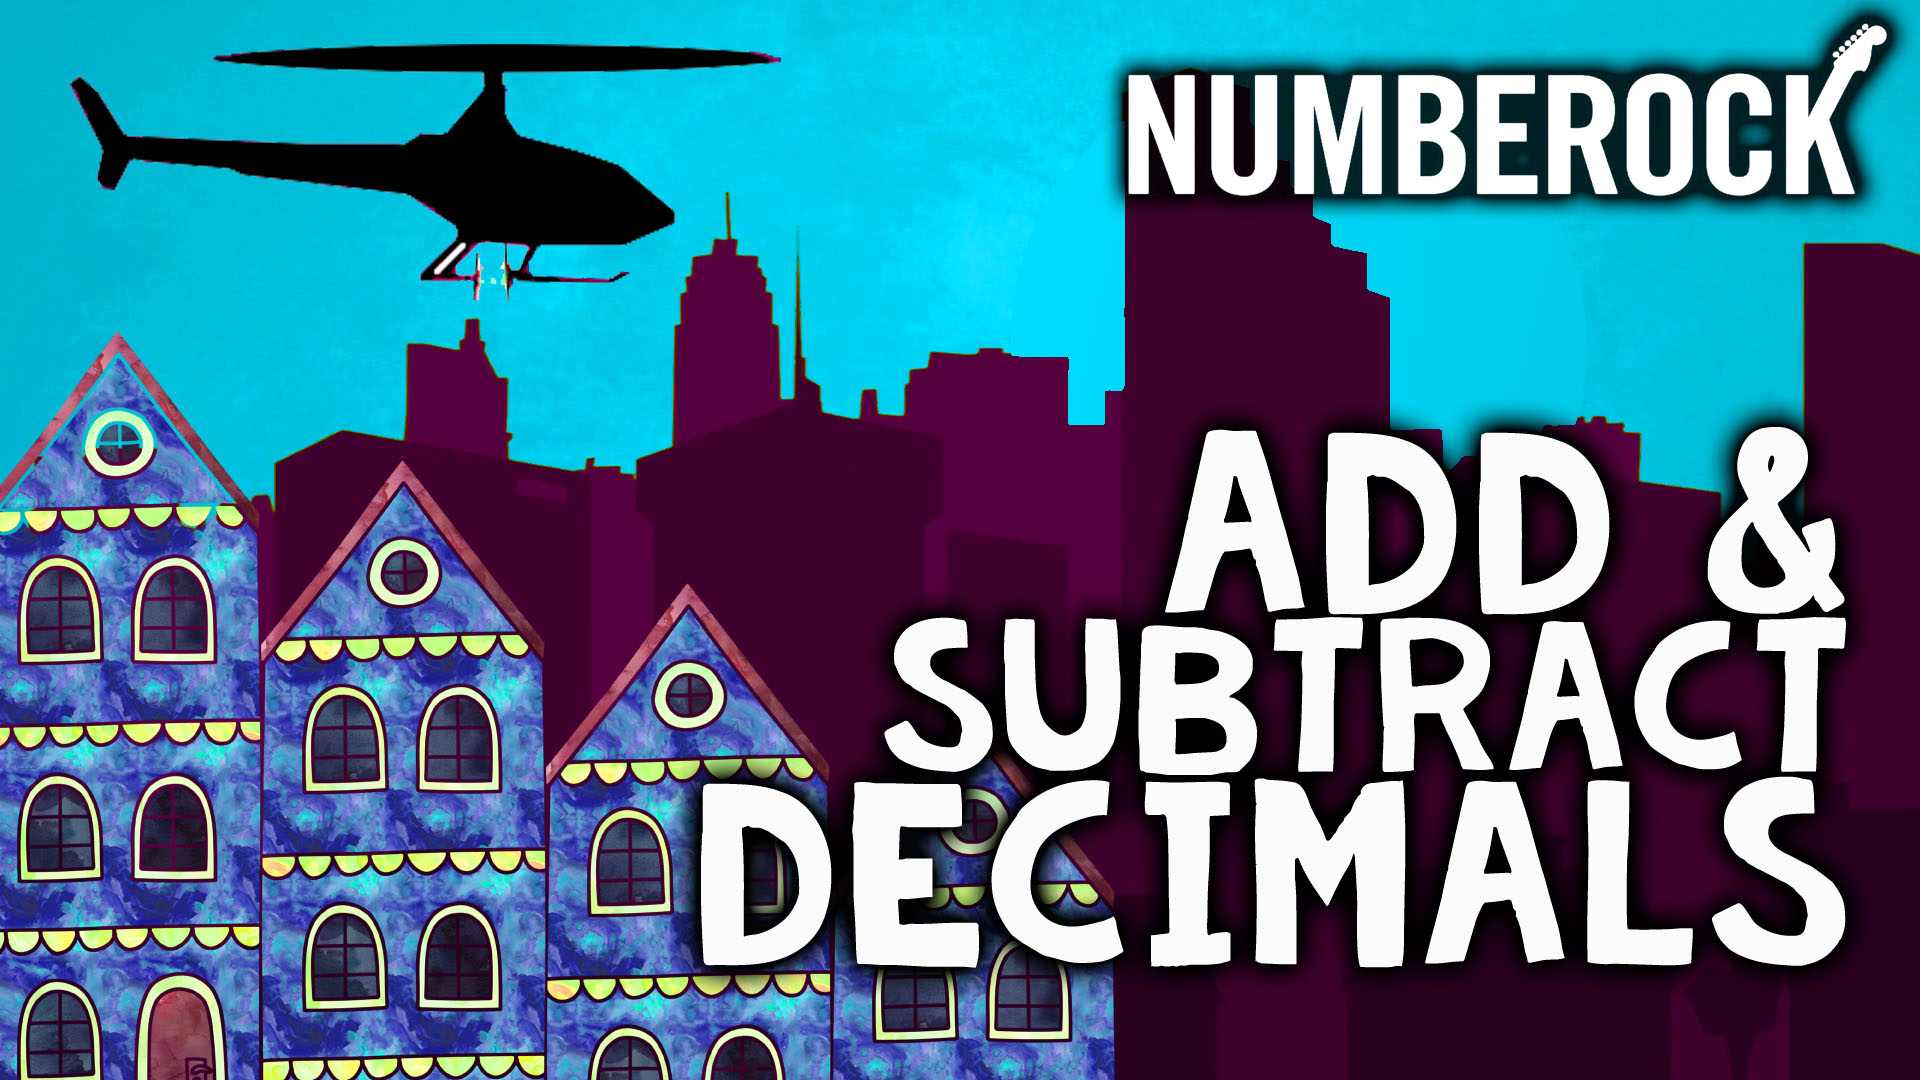 adding decimals and subtracting decimals math song by numerbock